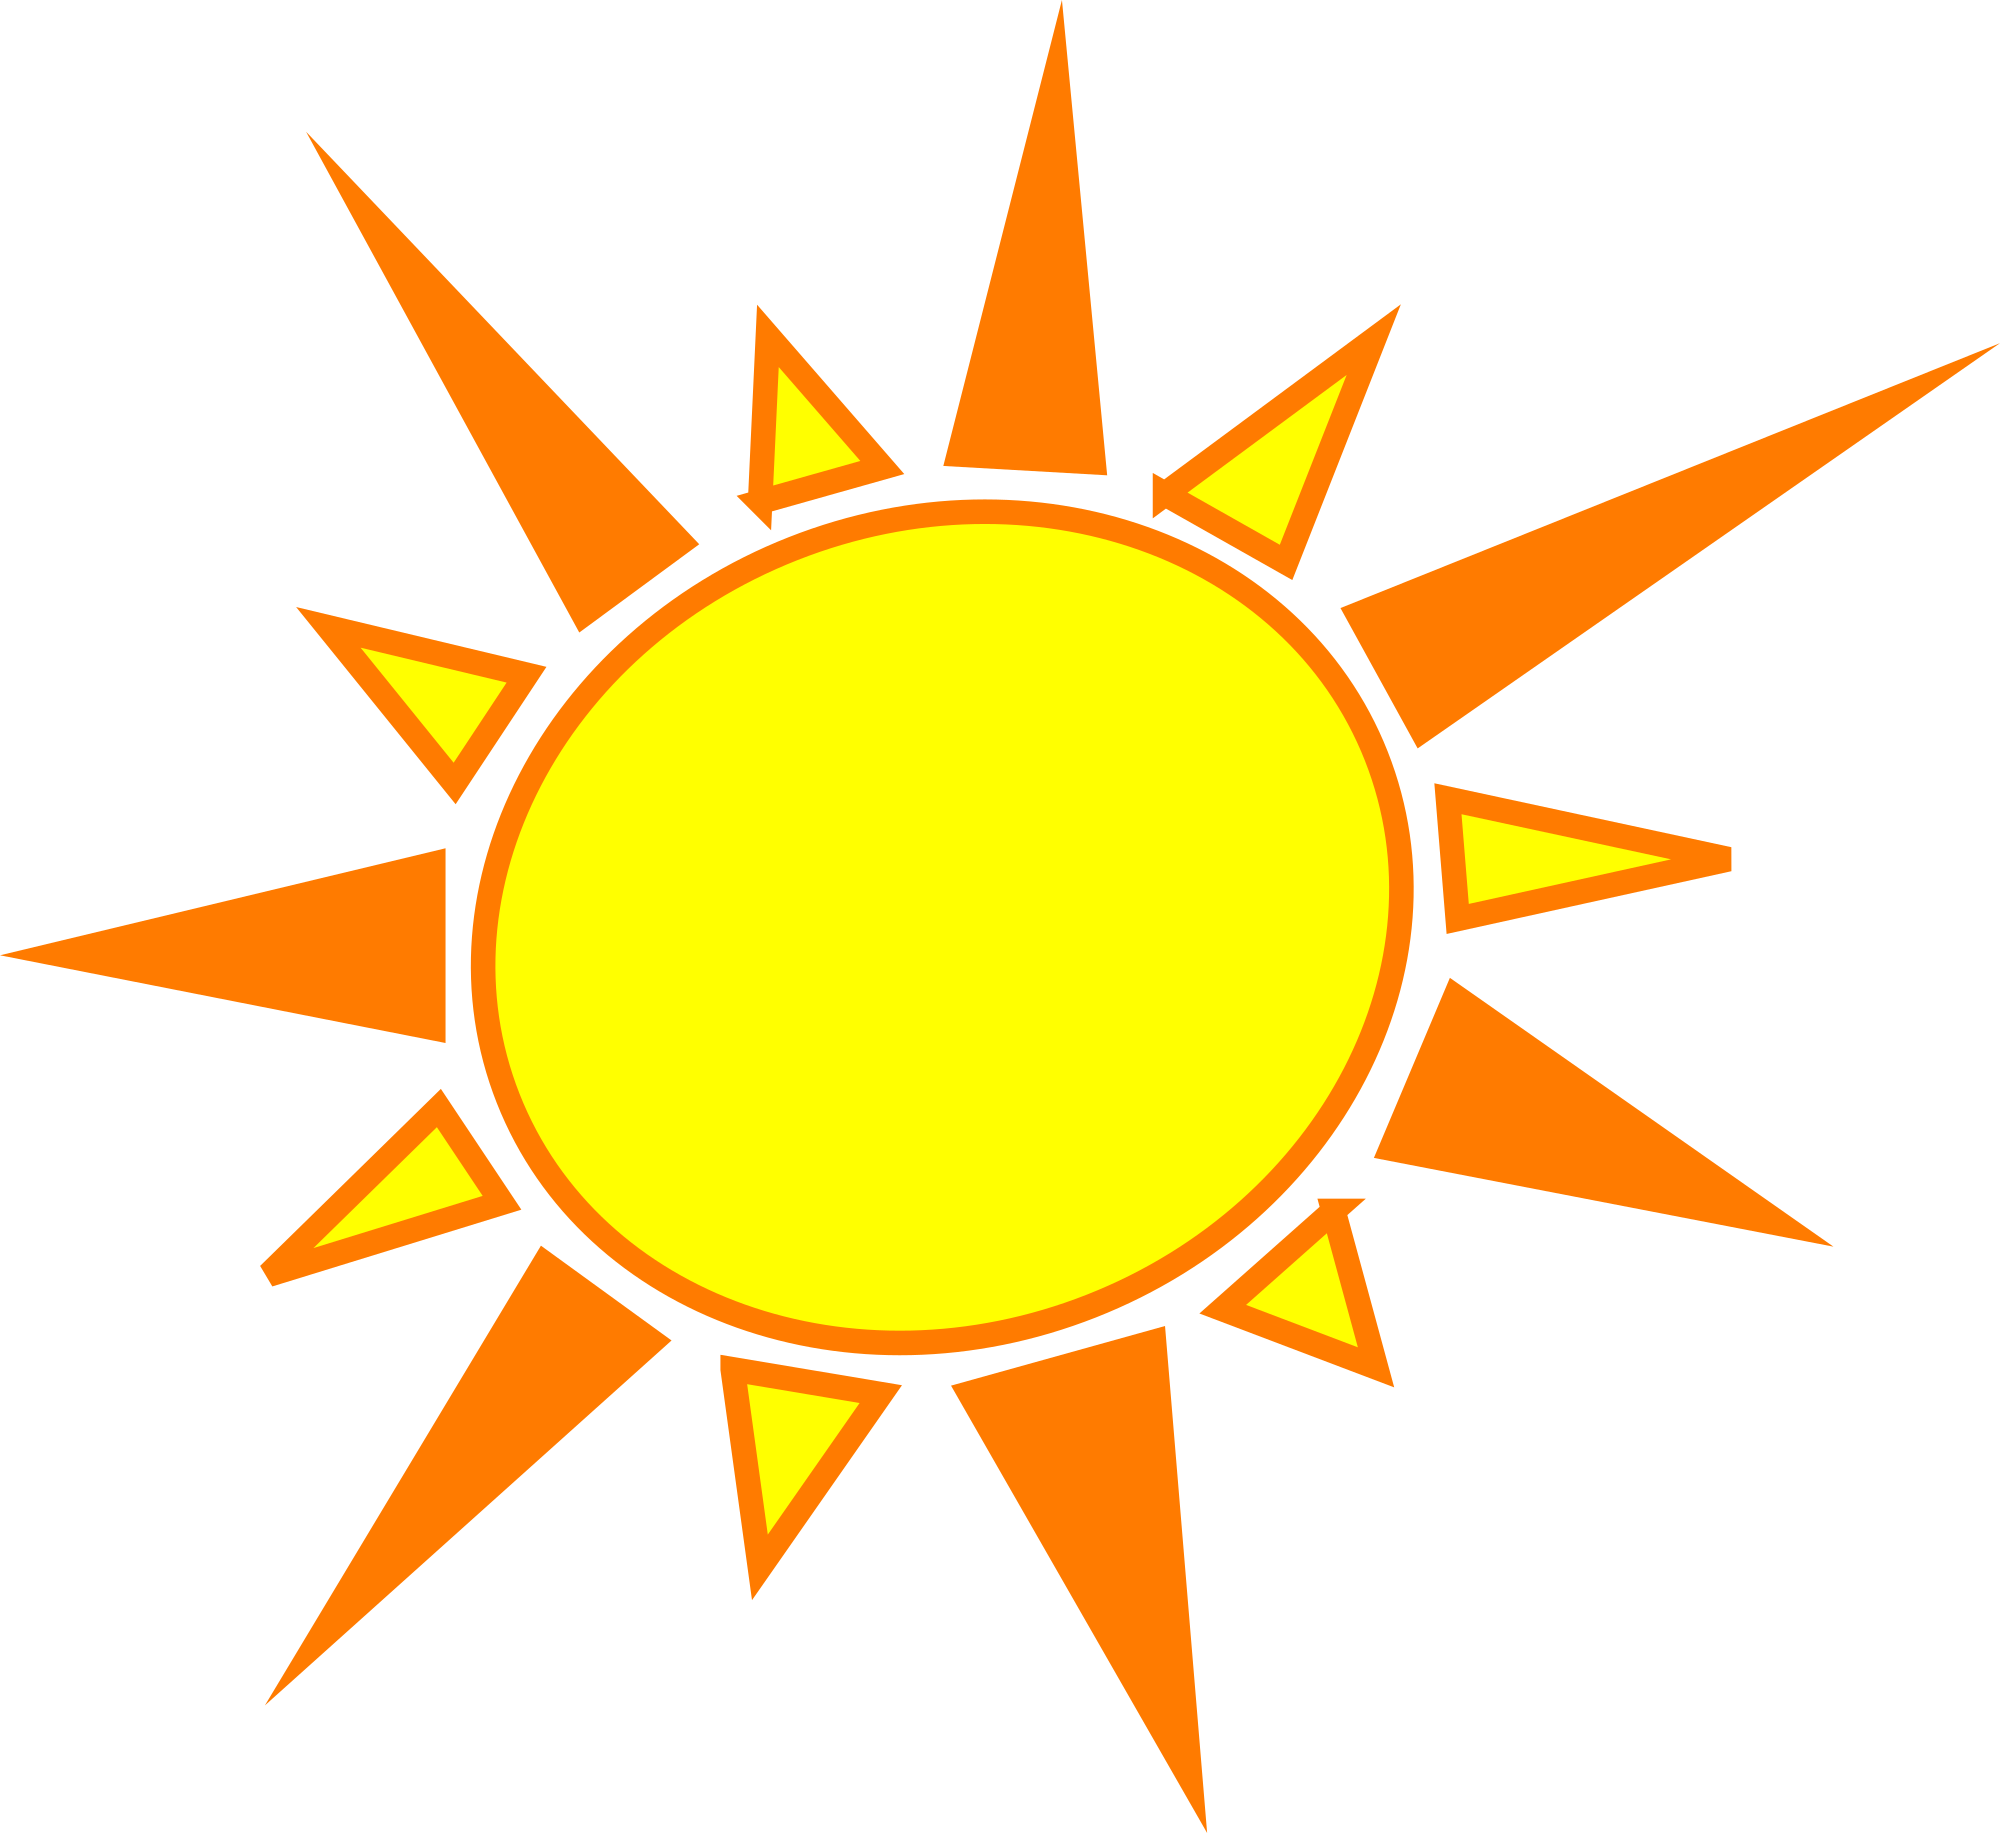 Cool sun clip art free clipart images image 2.